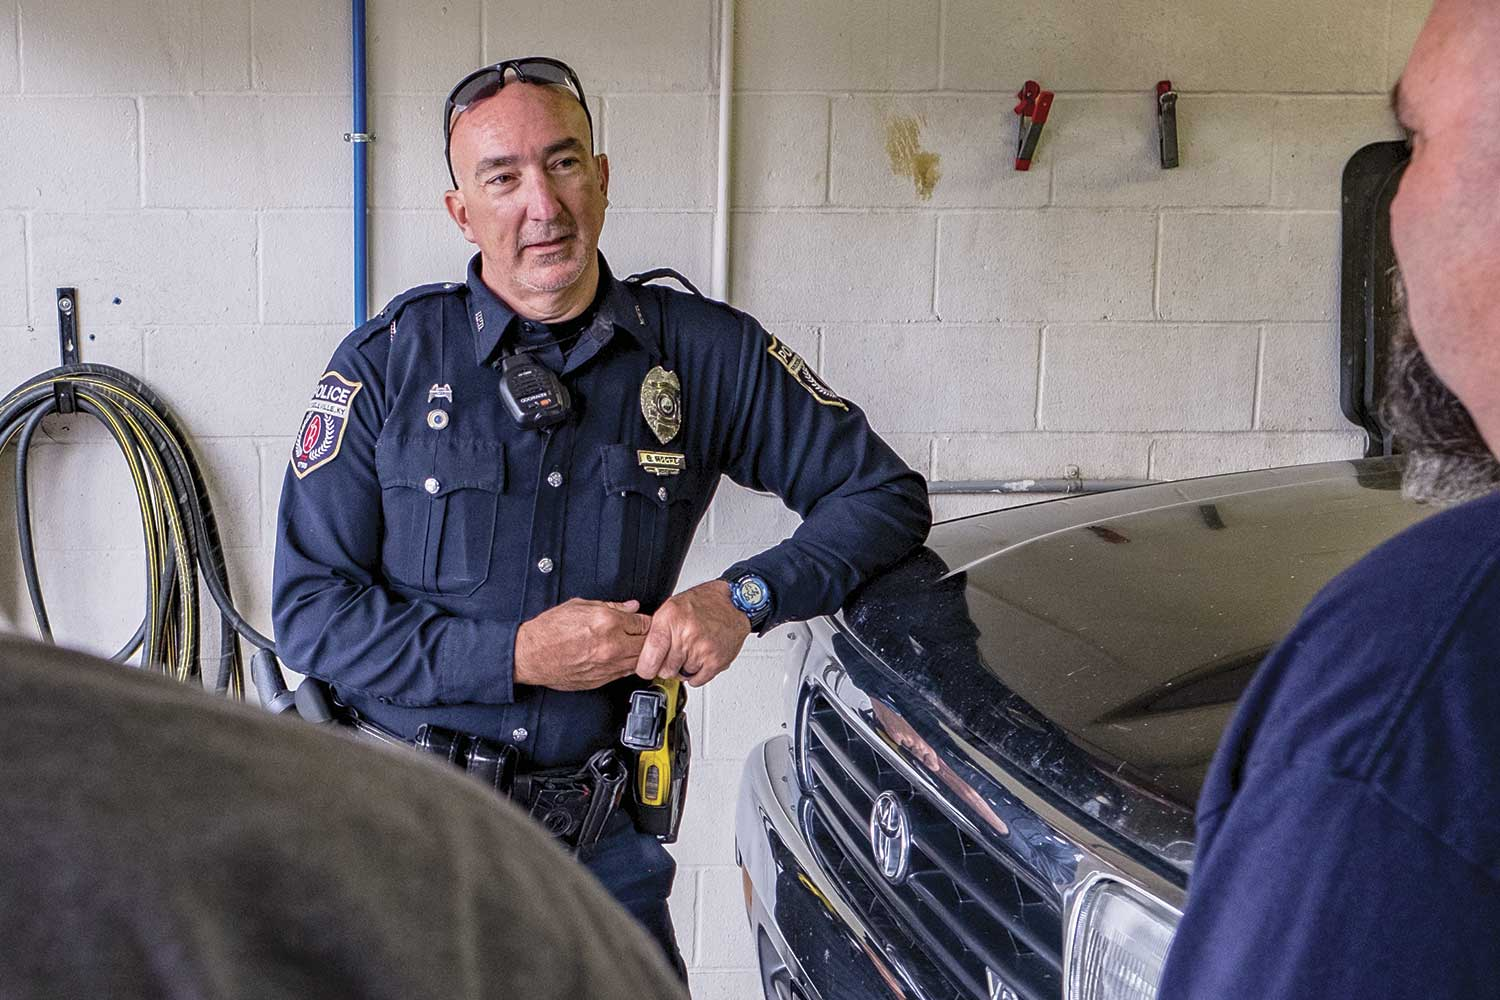 Bill Moore is the agency's full-time Crisis Intervention Team-trained police officer. He is often called to help handle calls relating to mental health issues. (Photo by Jim Robertson)